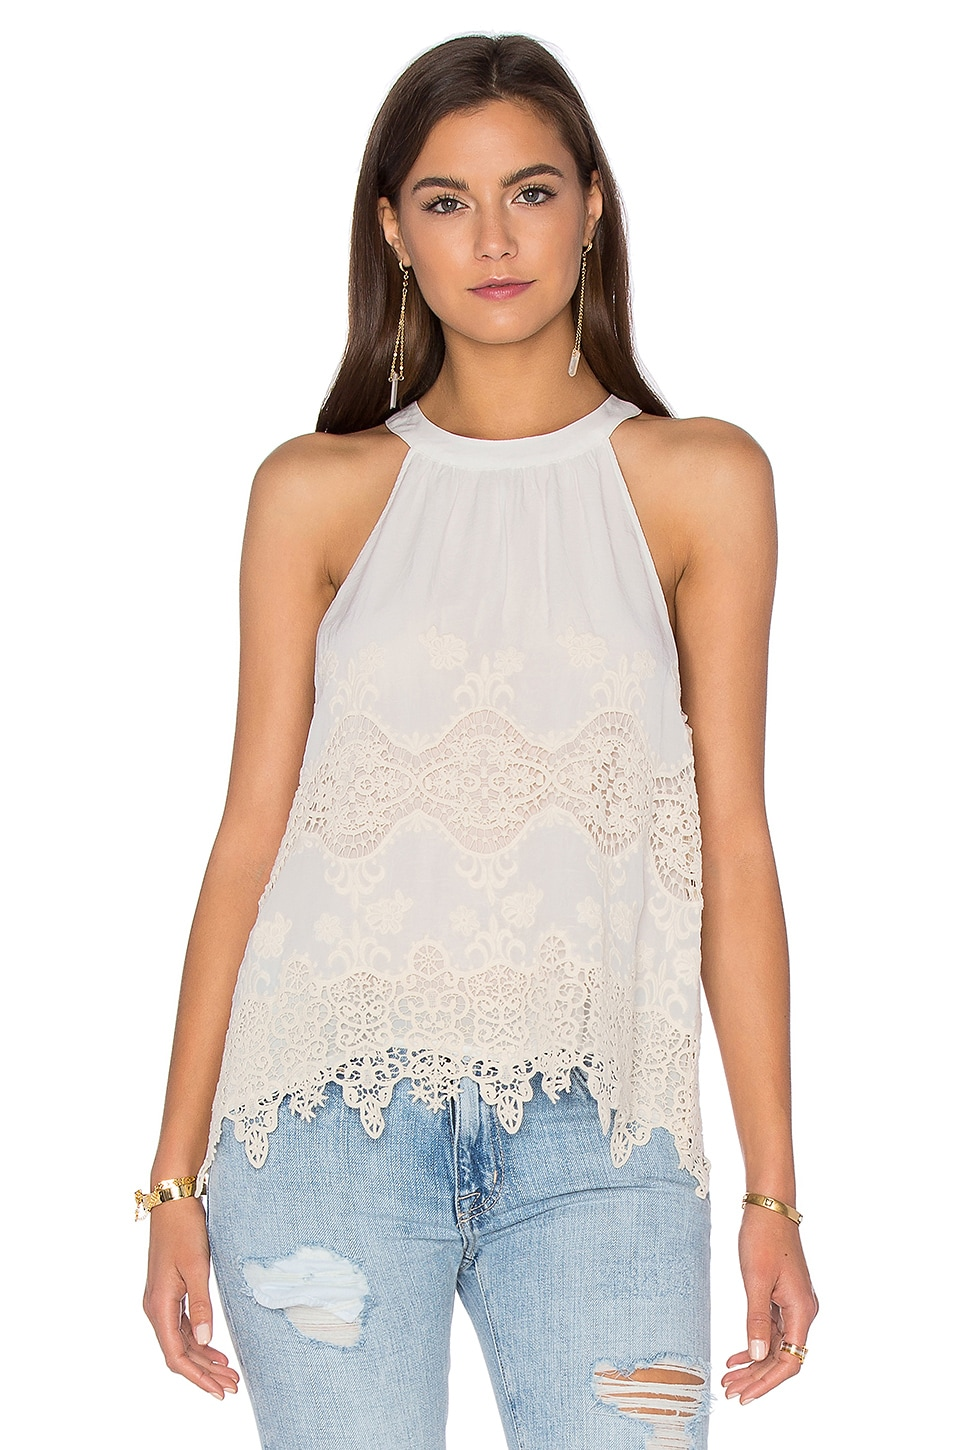 maven west Halter Cami in Bone